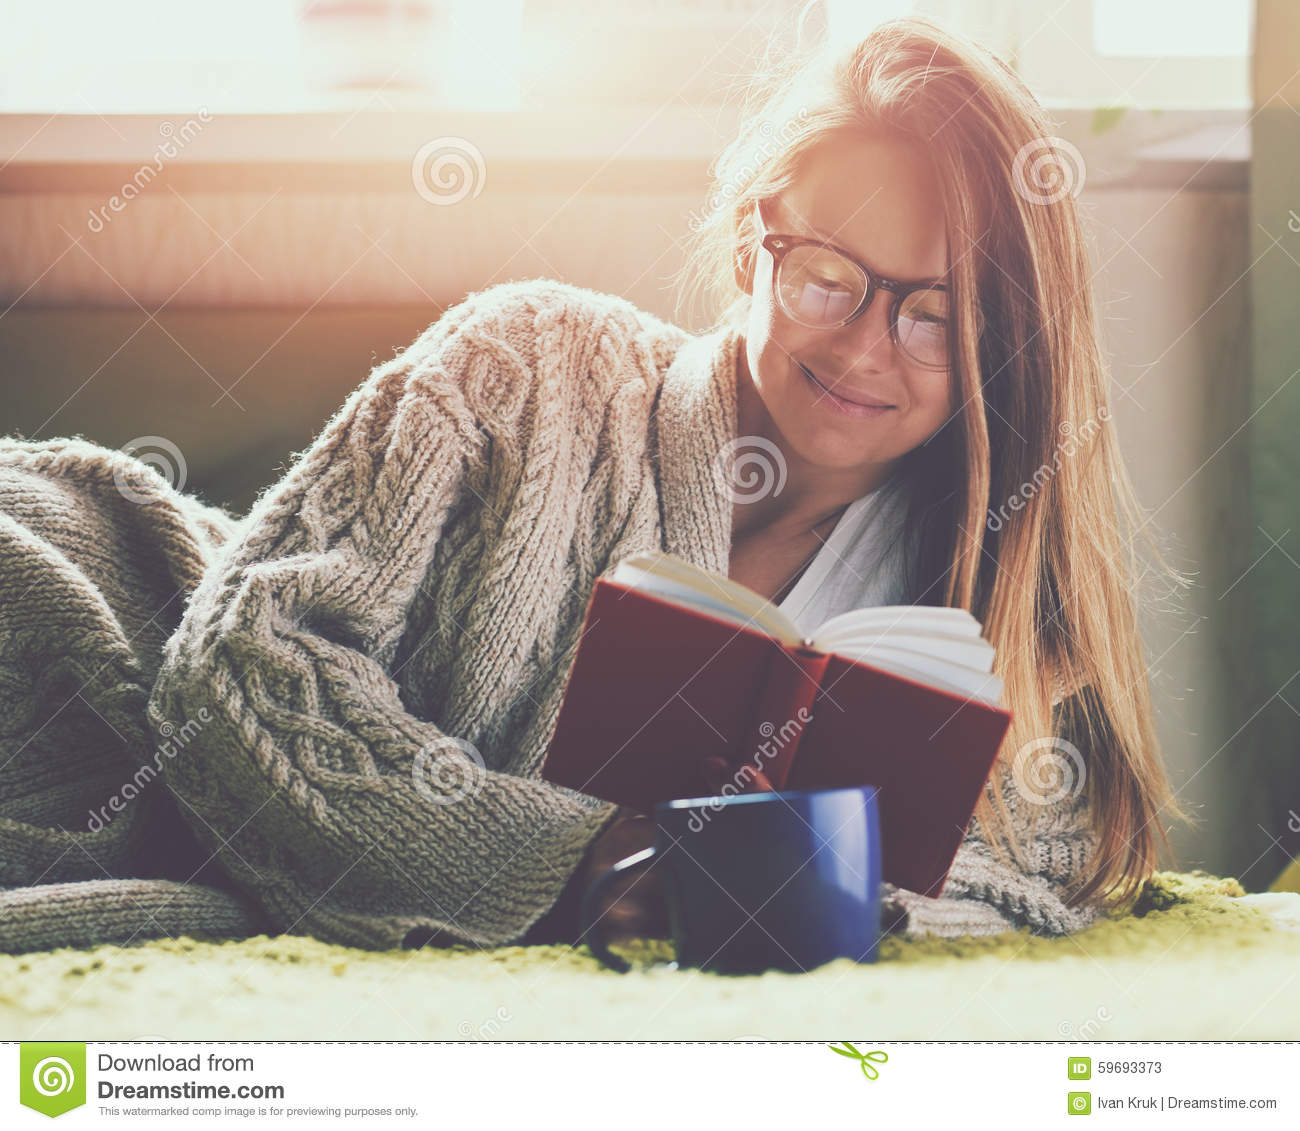 Girl reading book with coffee